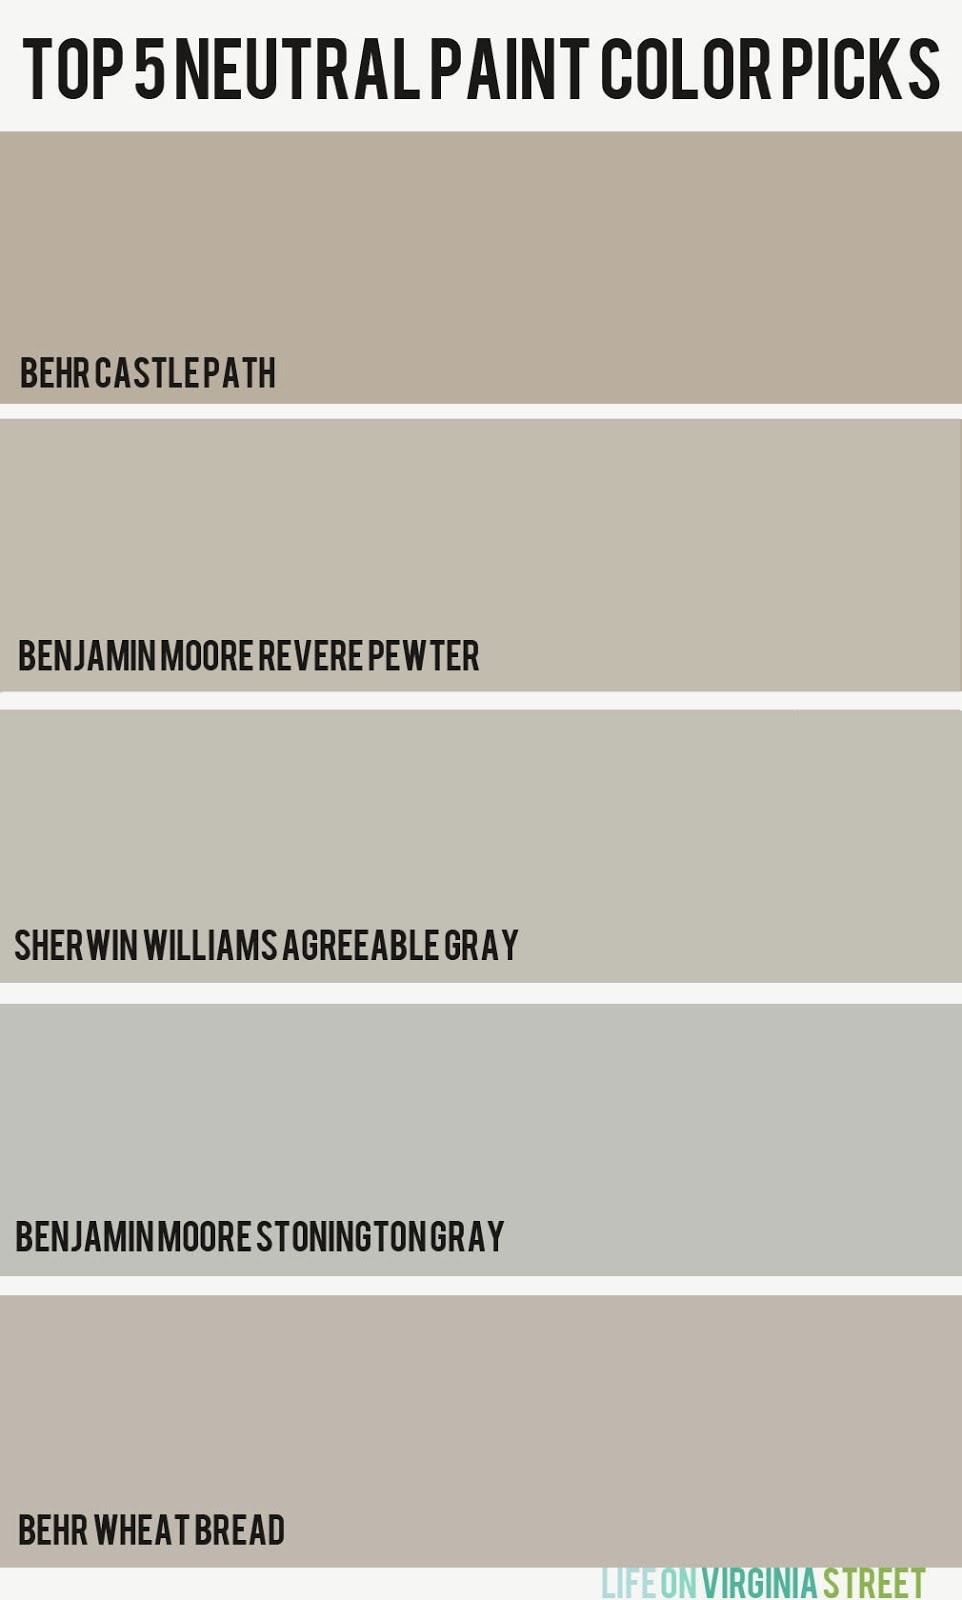 How To Pick The Perfect Paint Color And My Top Five Neutral Paint Picks    Life On Virginia Street